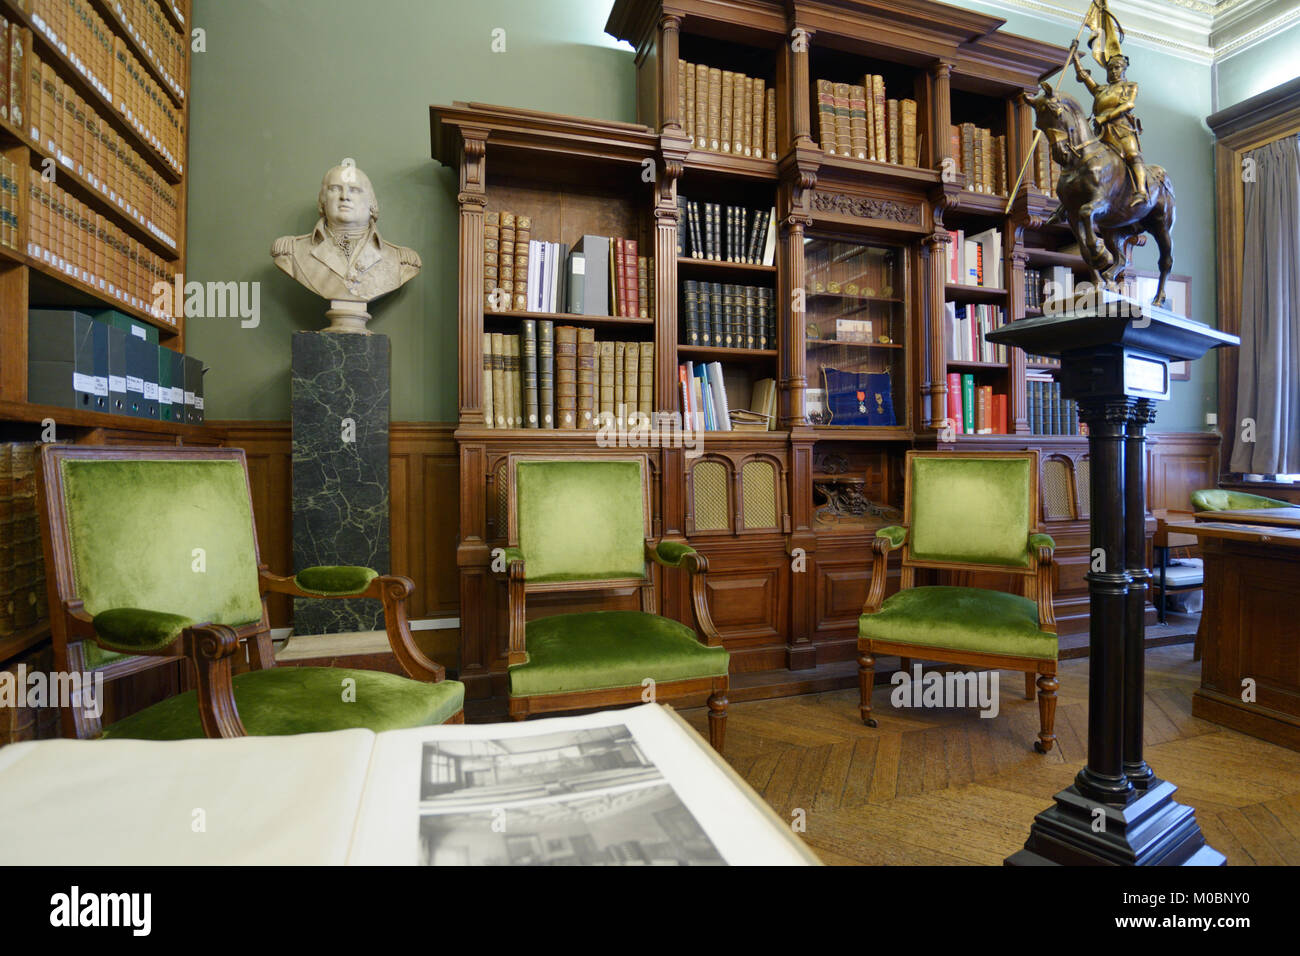 Paris, France - September 14, 2013: Interior of a historical room in the Sorbonne. Found in XIII century as the Stock Photo